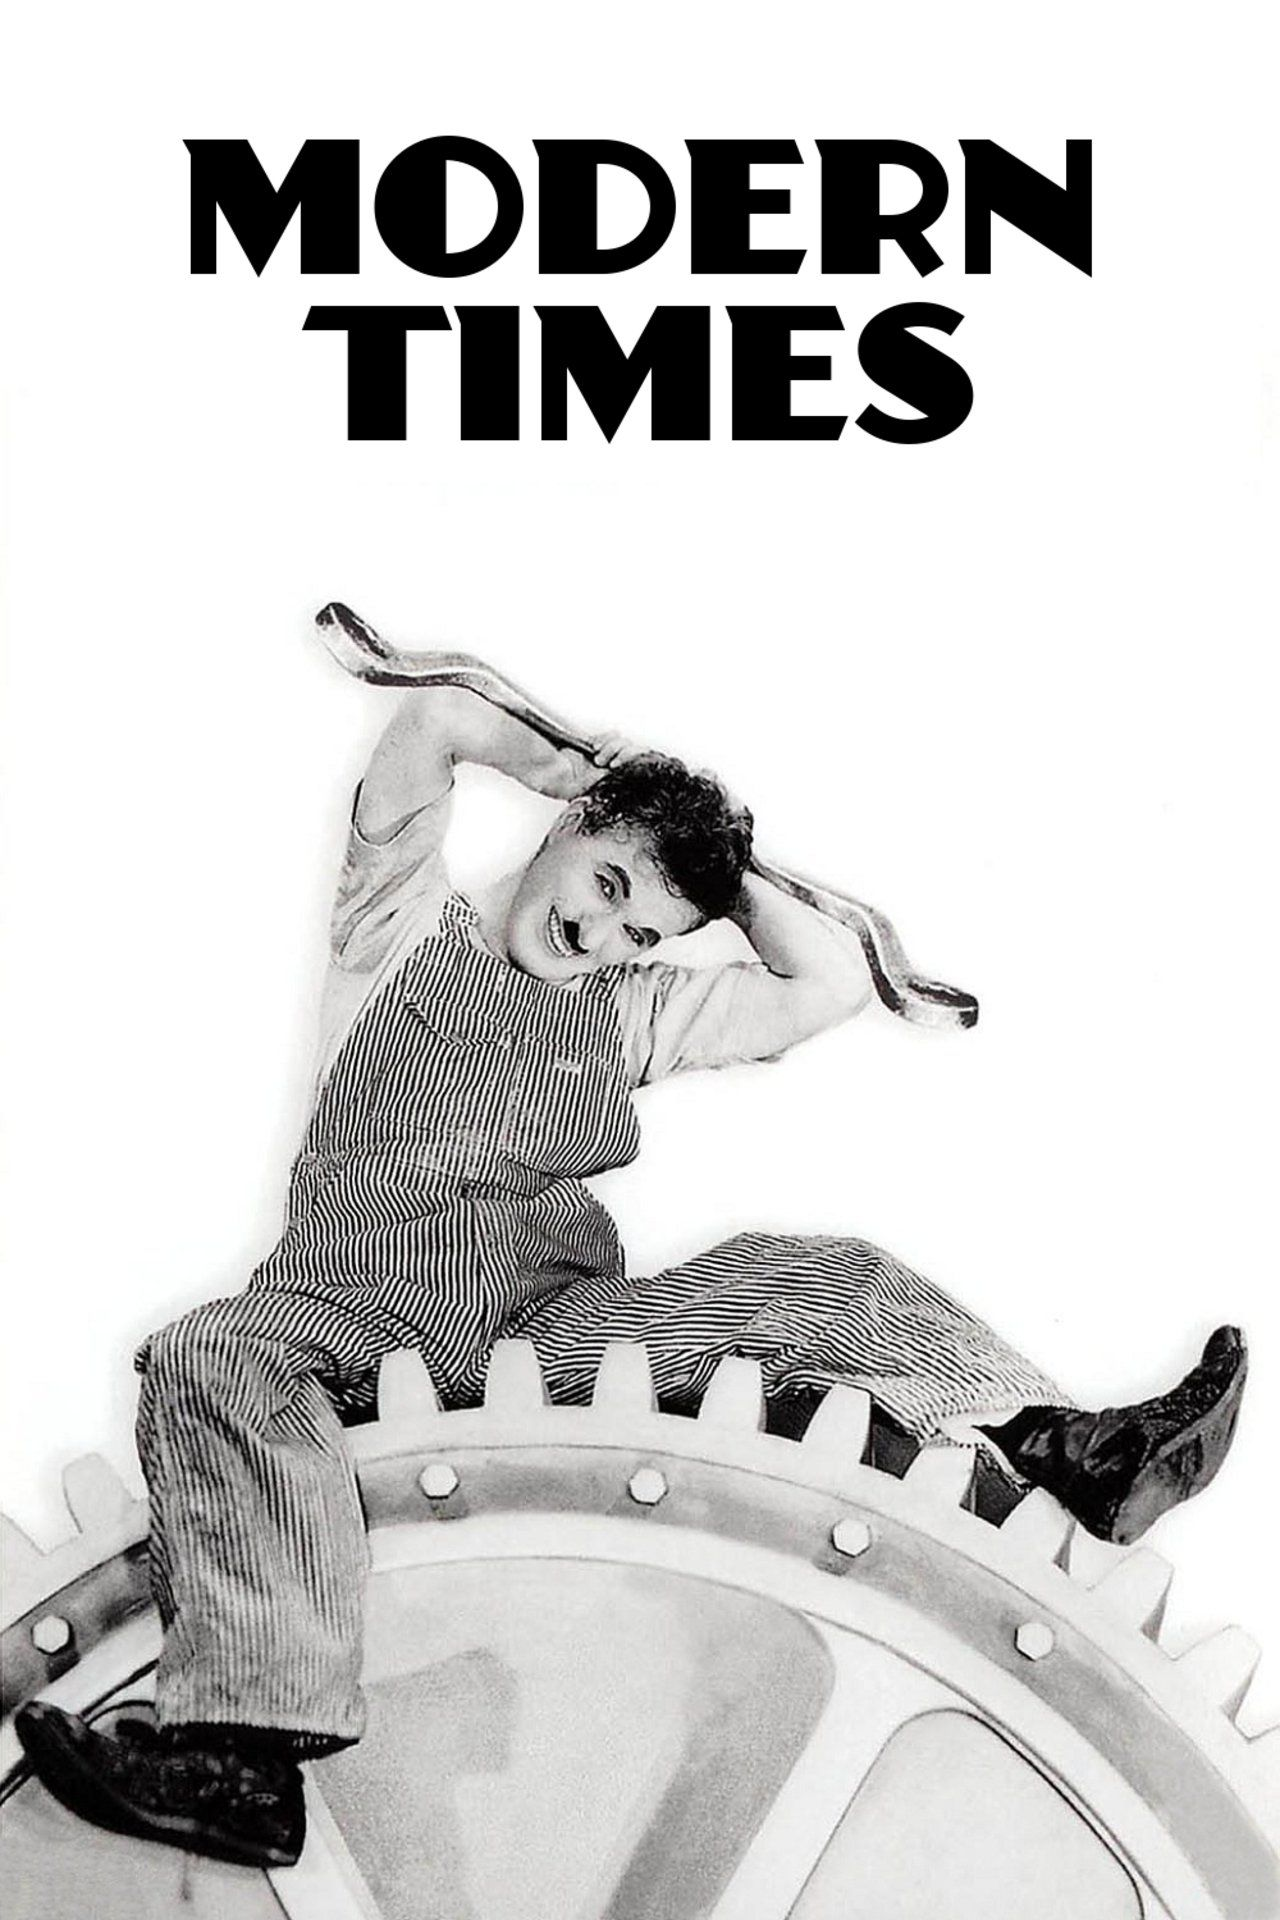 Modern Times, Charlie Chaplin's last outing as the Little Tramp, puts the iconic character to work as a giddily inept factory employee who becomes smitten with a gorgeous gamine (Paulette Goddard). With its barrage of unforgettable gags and sly commentary on class struggle during the Great Depression, Modern Times--though made almost a decade into the talkie era and containing moments of sound (even song!)--is a timeless showcase of Chaplin's untouchable genius as a director of silent…